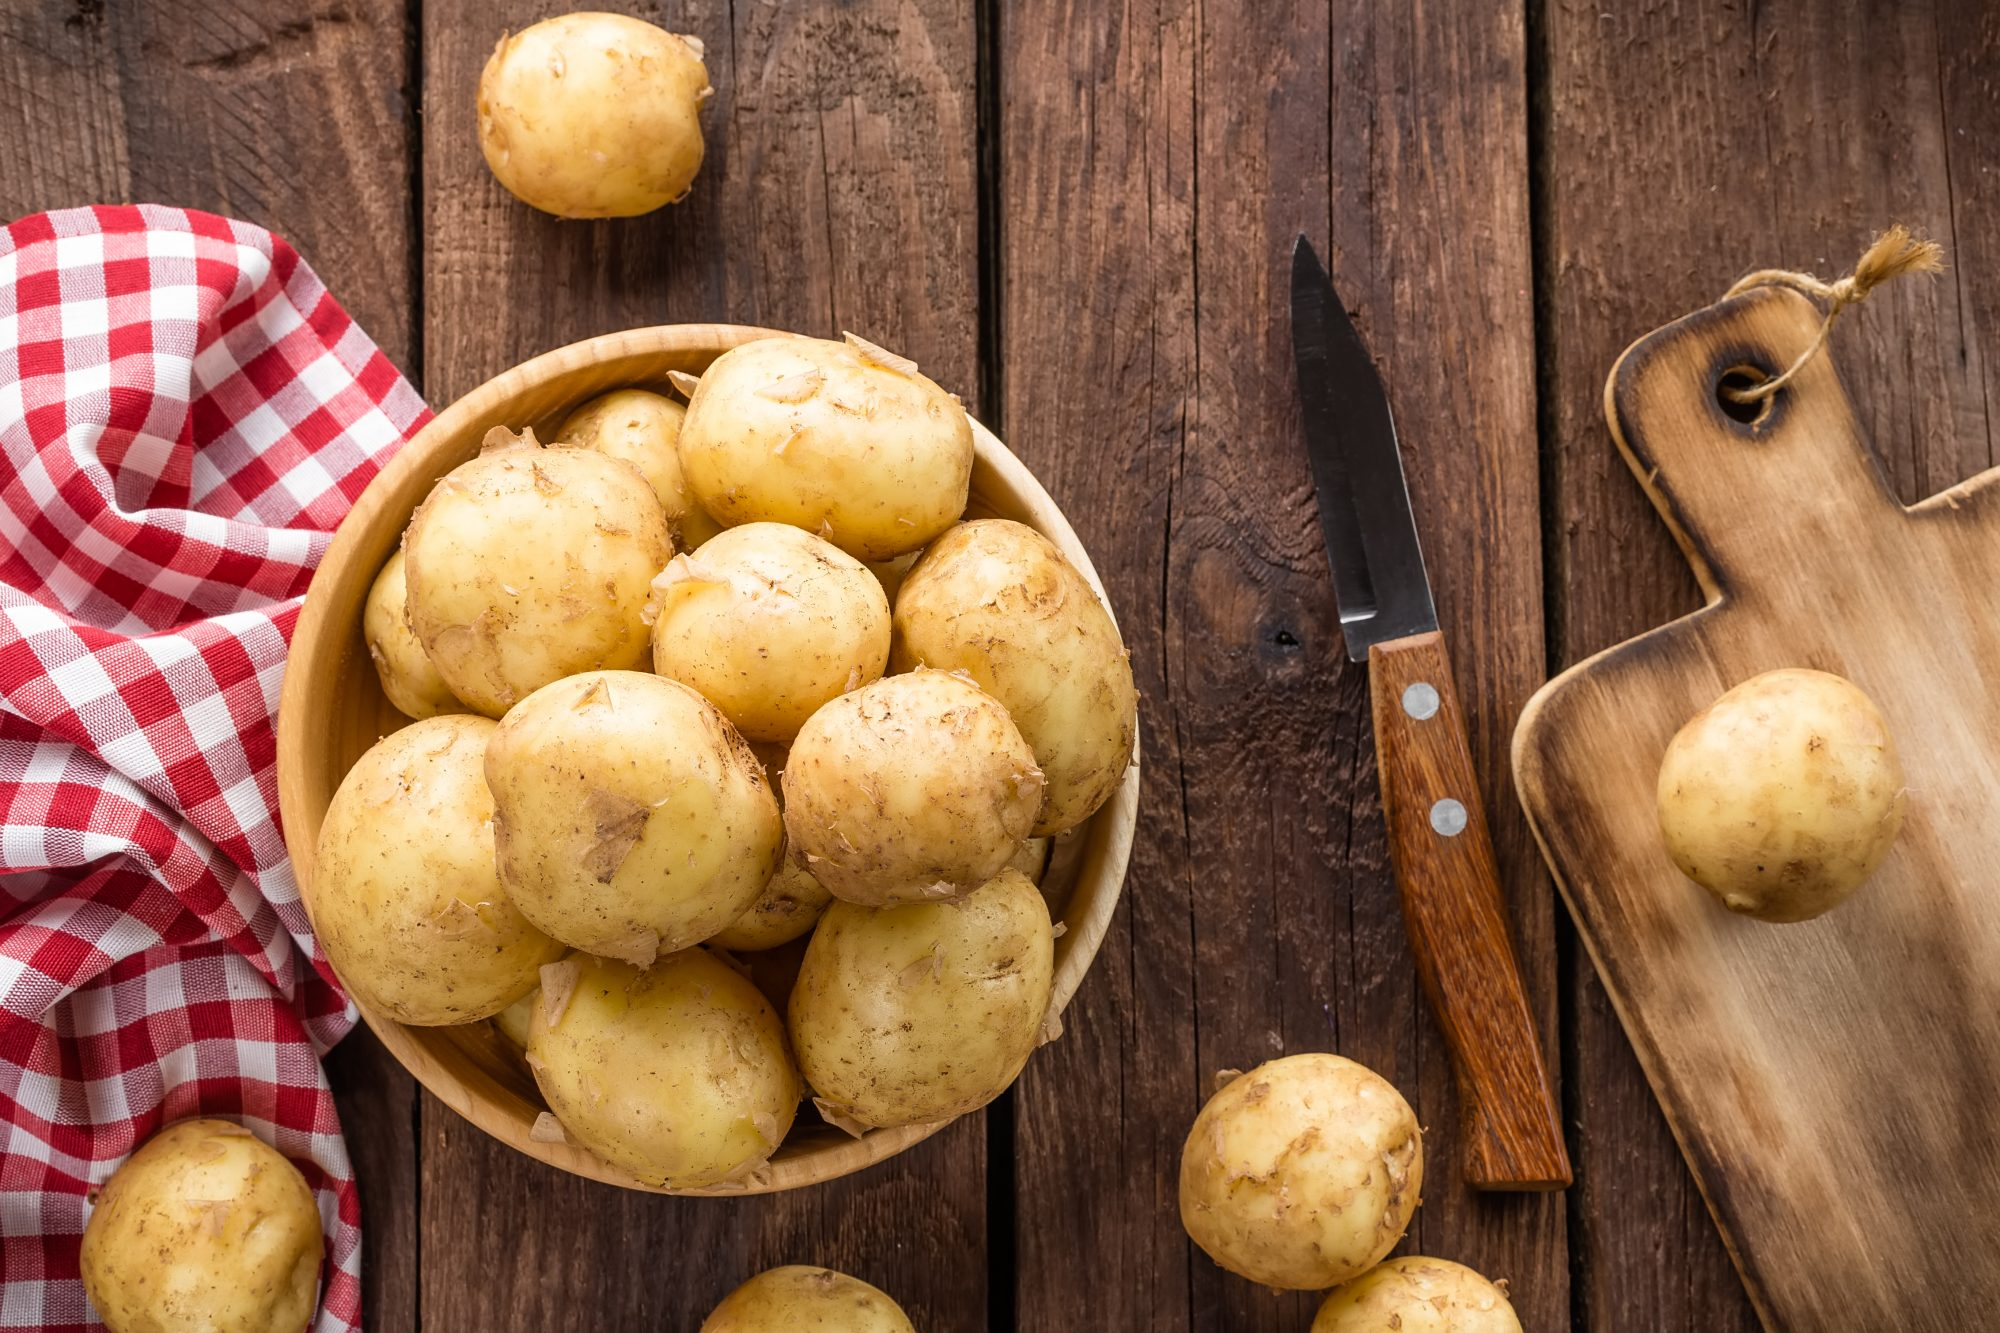 The One Thing You Should Do For the Best Roasted Potatoes